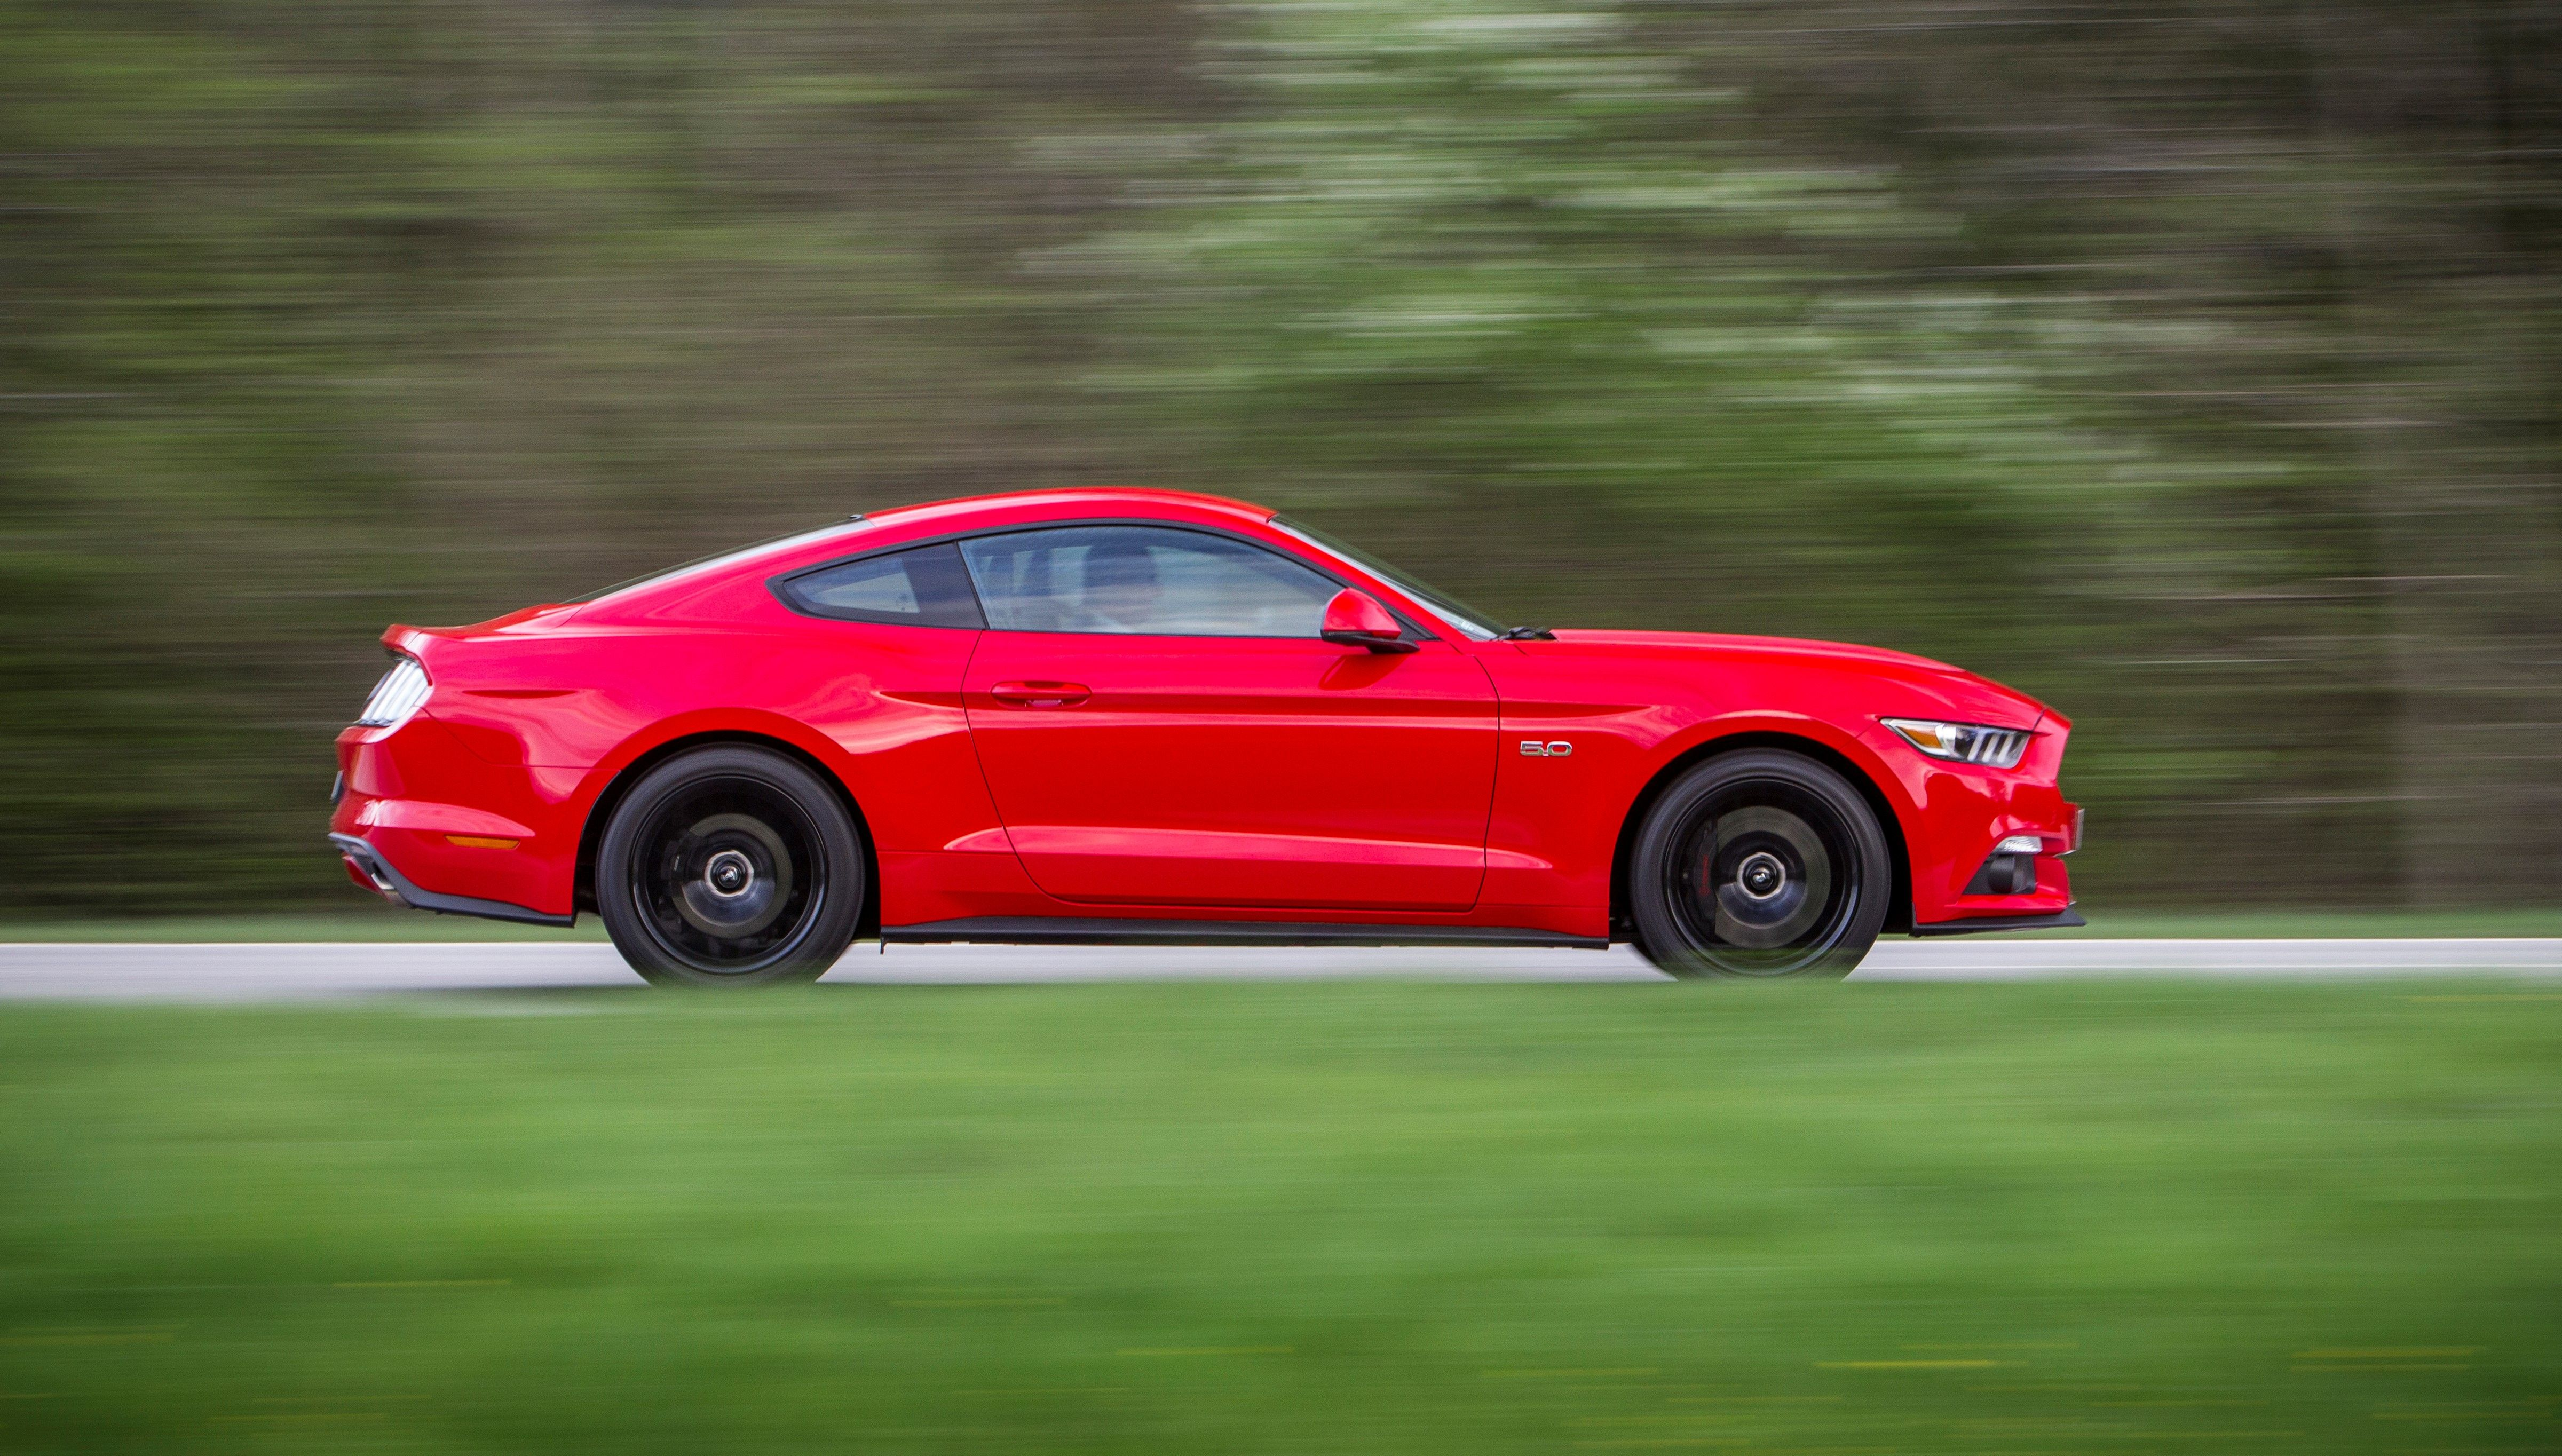 360 Degree Lap Of Silverstone In The New Ford Mustang Gt